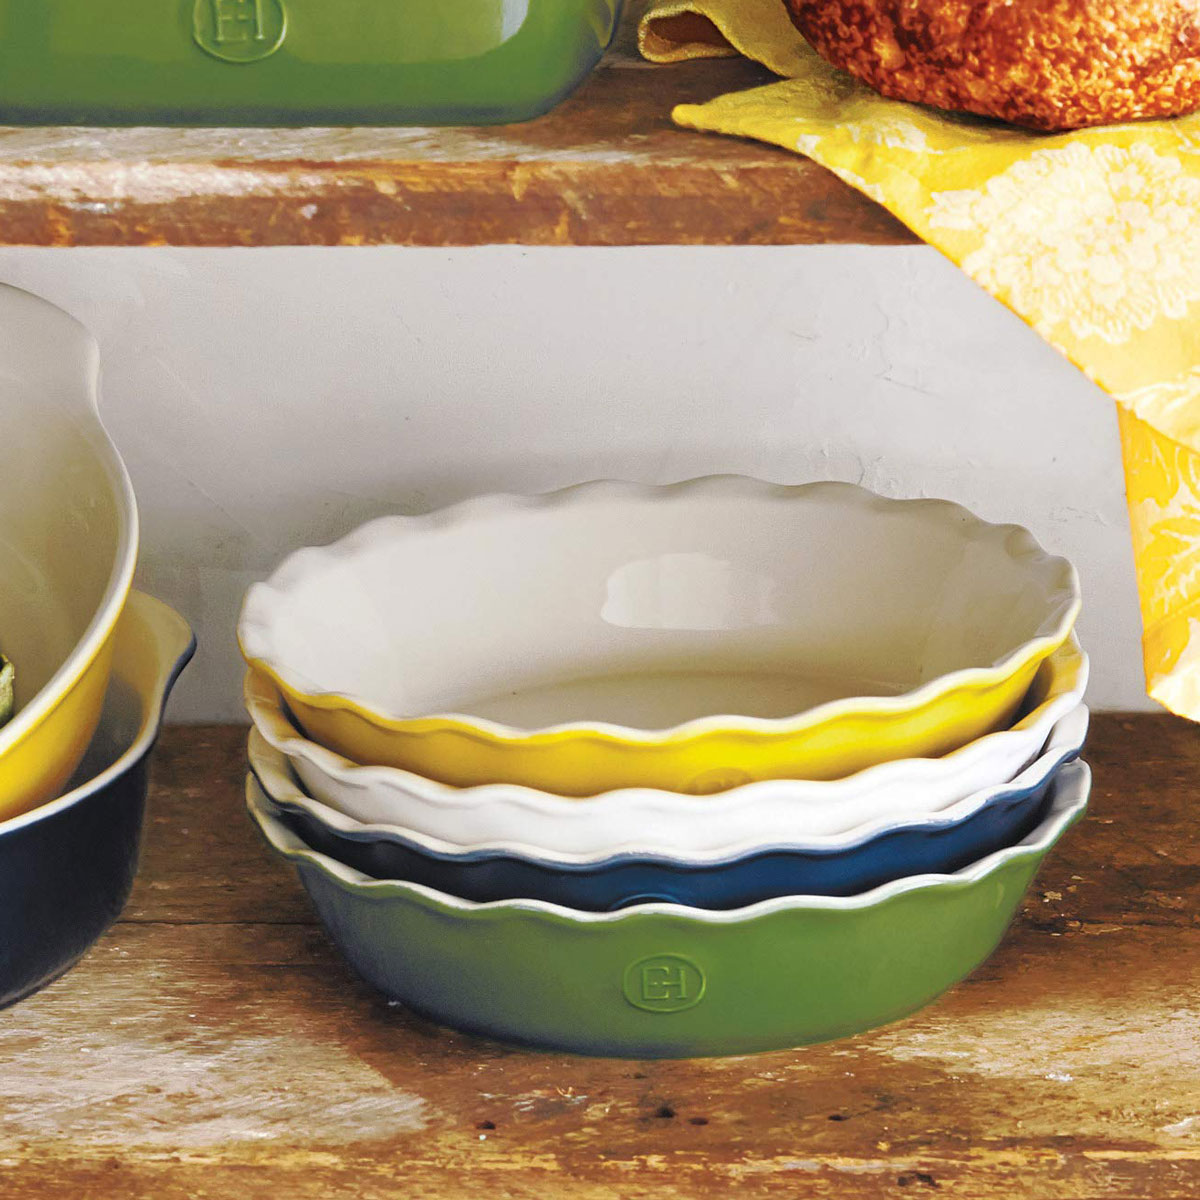 Emile Henry Classic Pie Dish